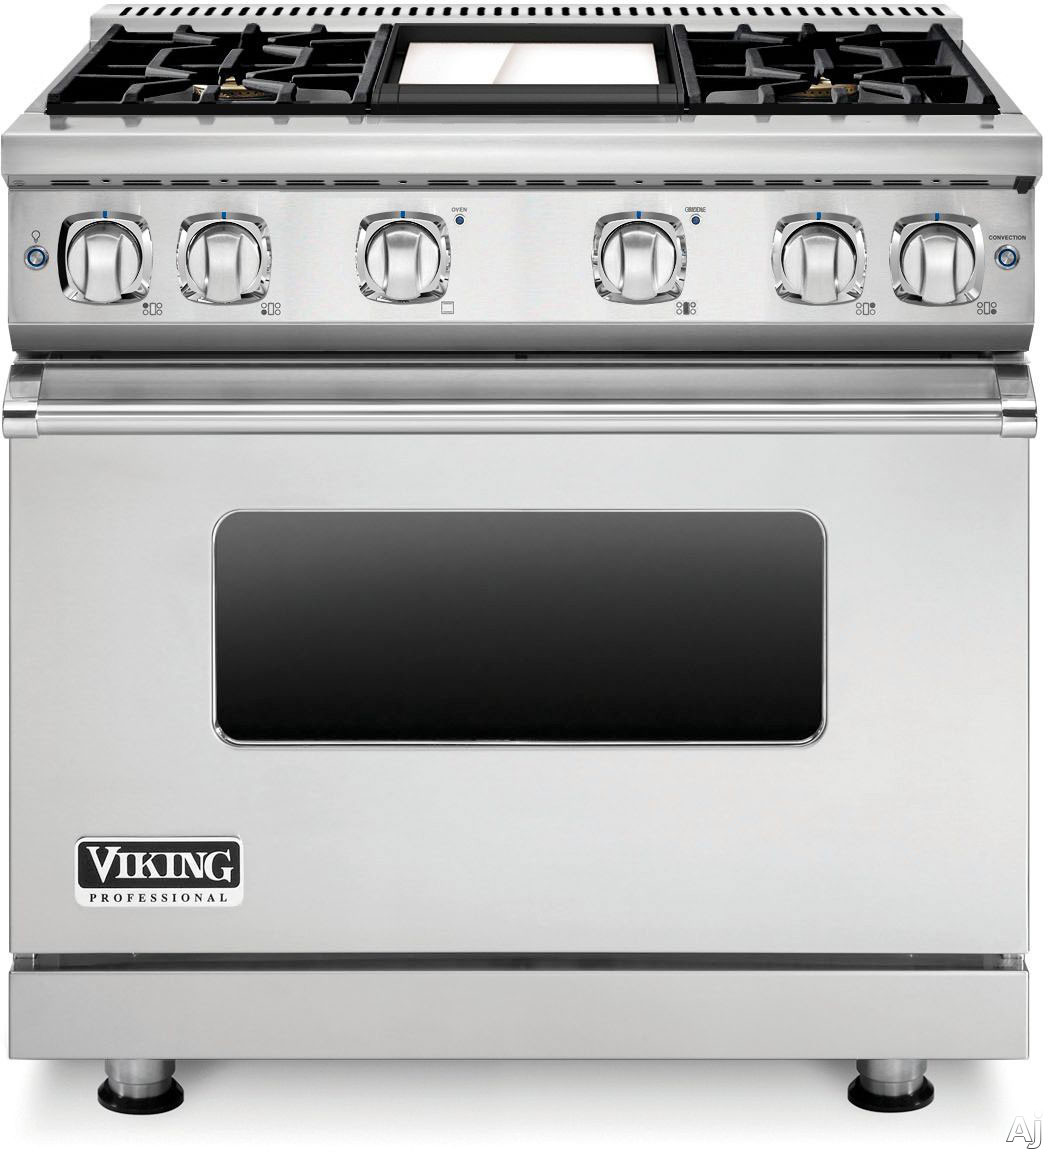 Viking Professional 7 Series VGR73614GSS 36 Inch Gas Range with Convection, ViChrome Griddle, Simmer Burners, 5.1 cu. ft. Oven, 4 Sealed Burners, Star-K Certified, Easy Clean Porcelain Interior and Dishwasher-Safe Knobs, Grates and Burner Caps: Stainless